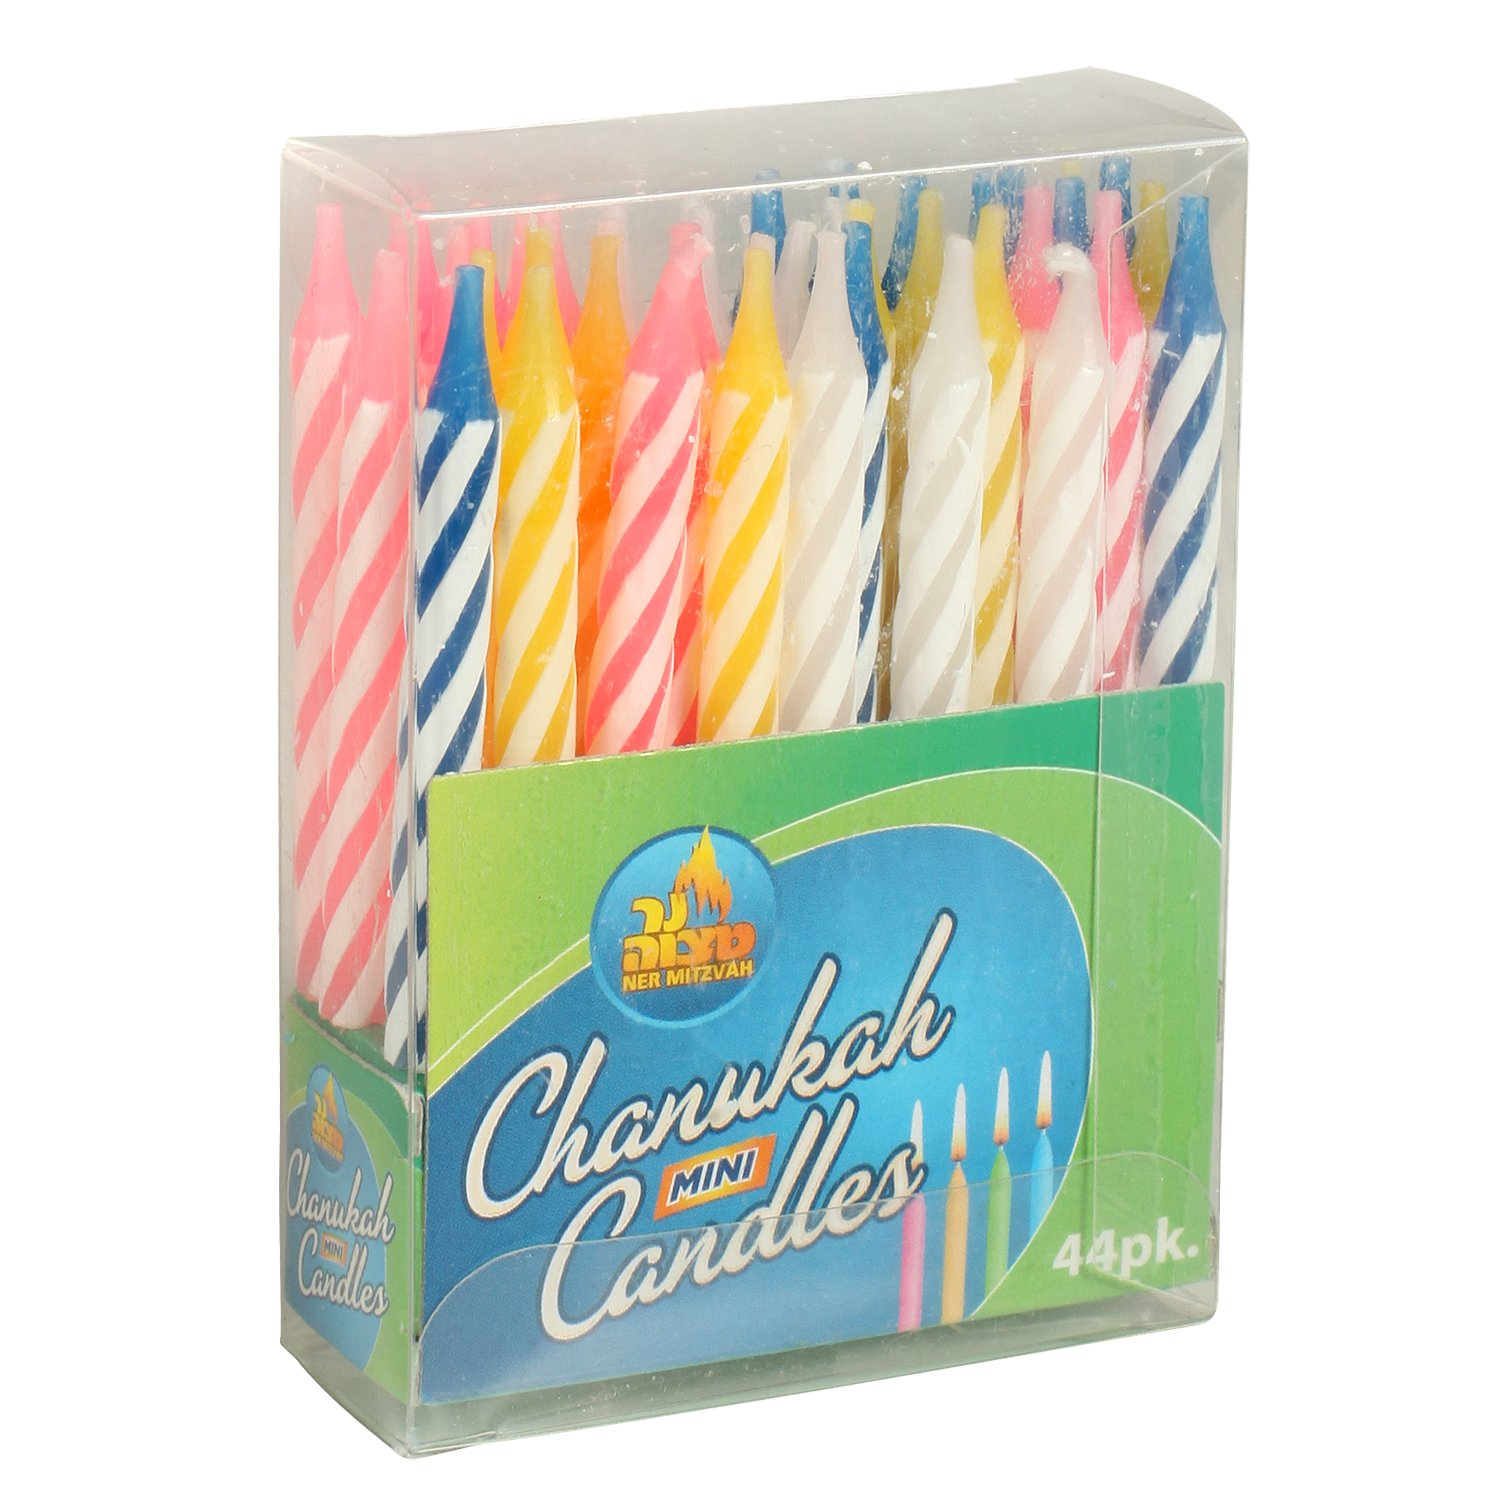 Multicolor Mini Hanukkah Candles / Birthday Candles, 44 Pack Ner Mitzvah 28330